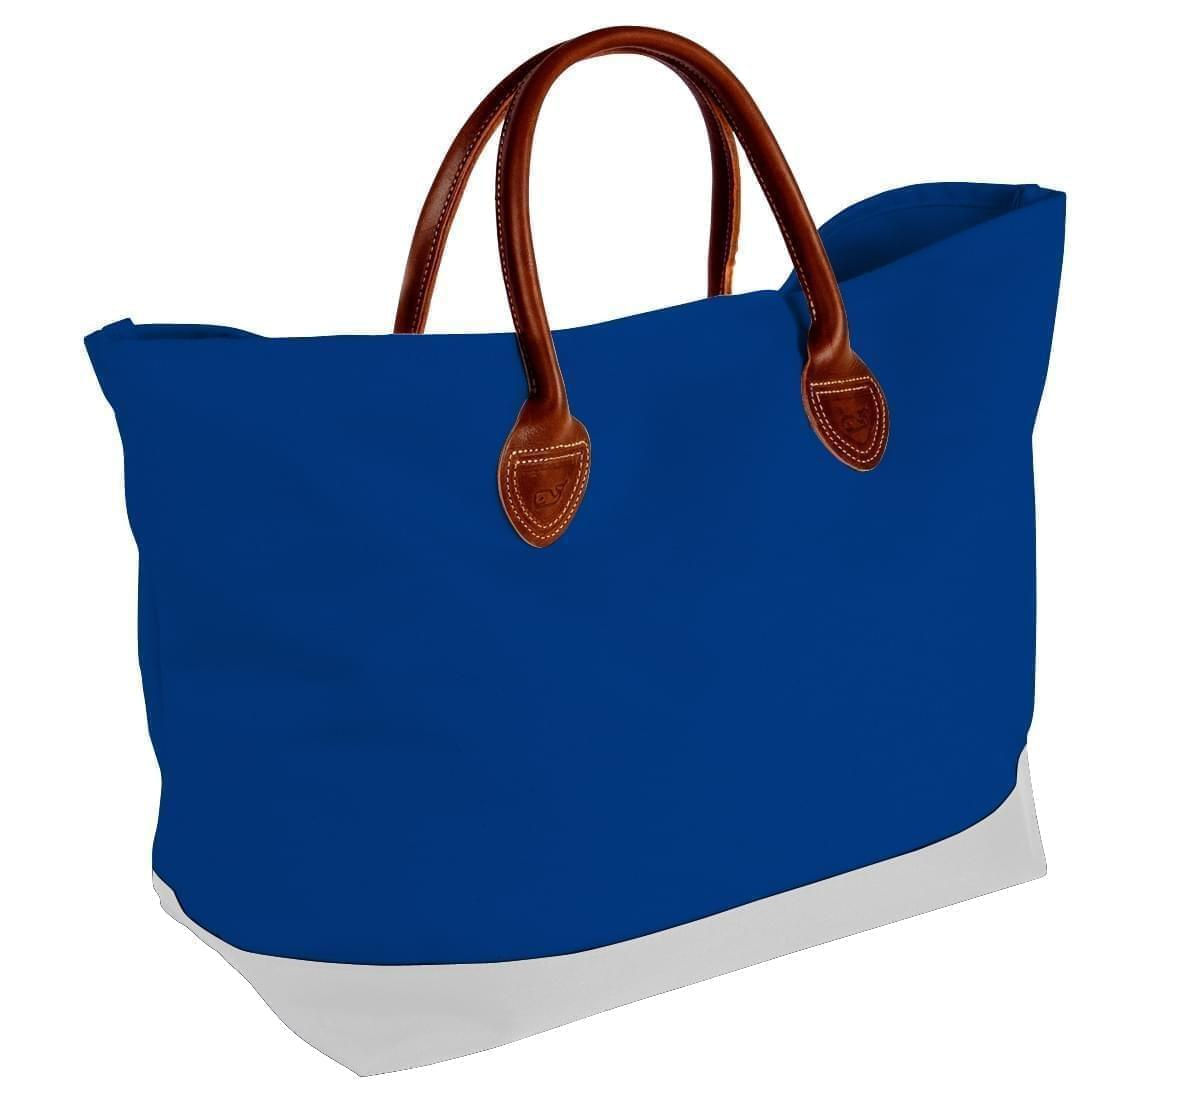 USA Made Canvas Leather Handle Totes, Royal Blue-White, 10899-PF9